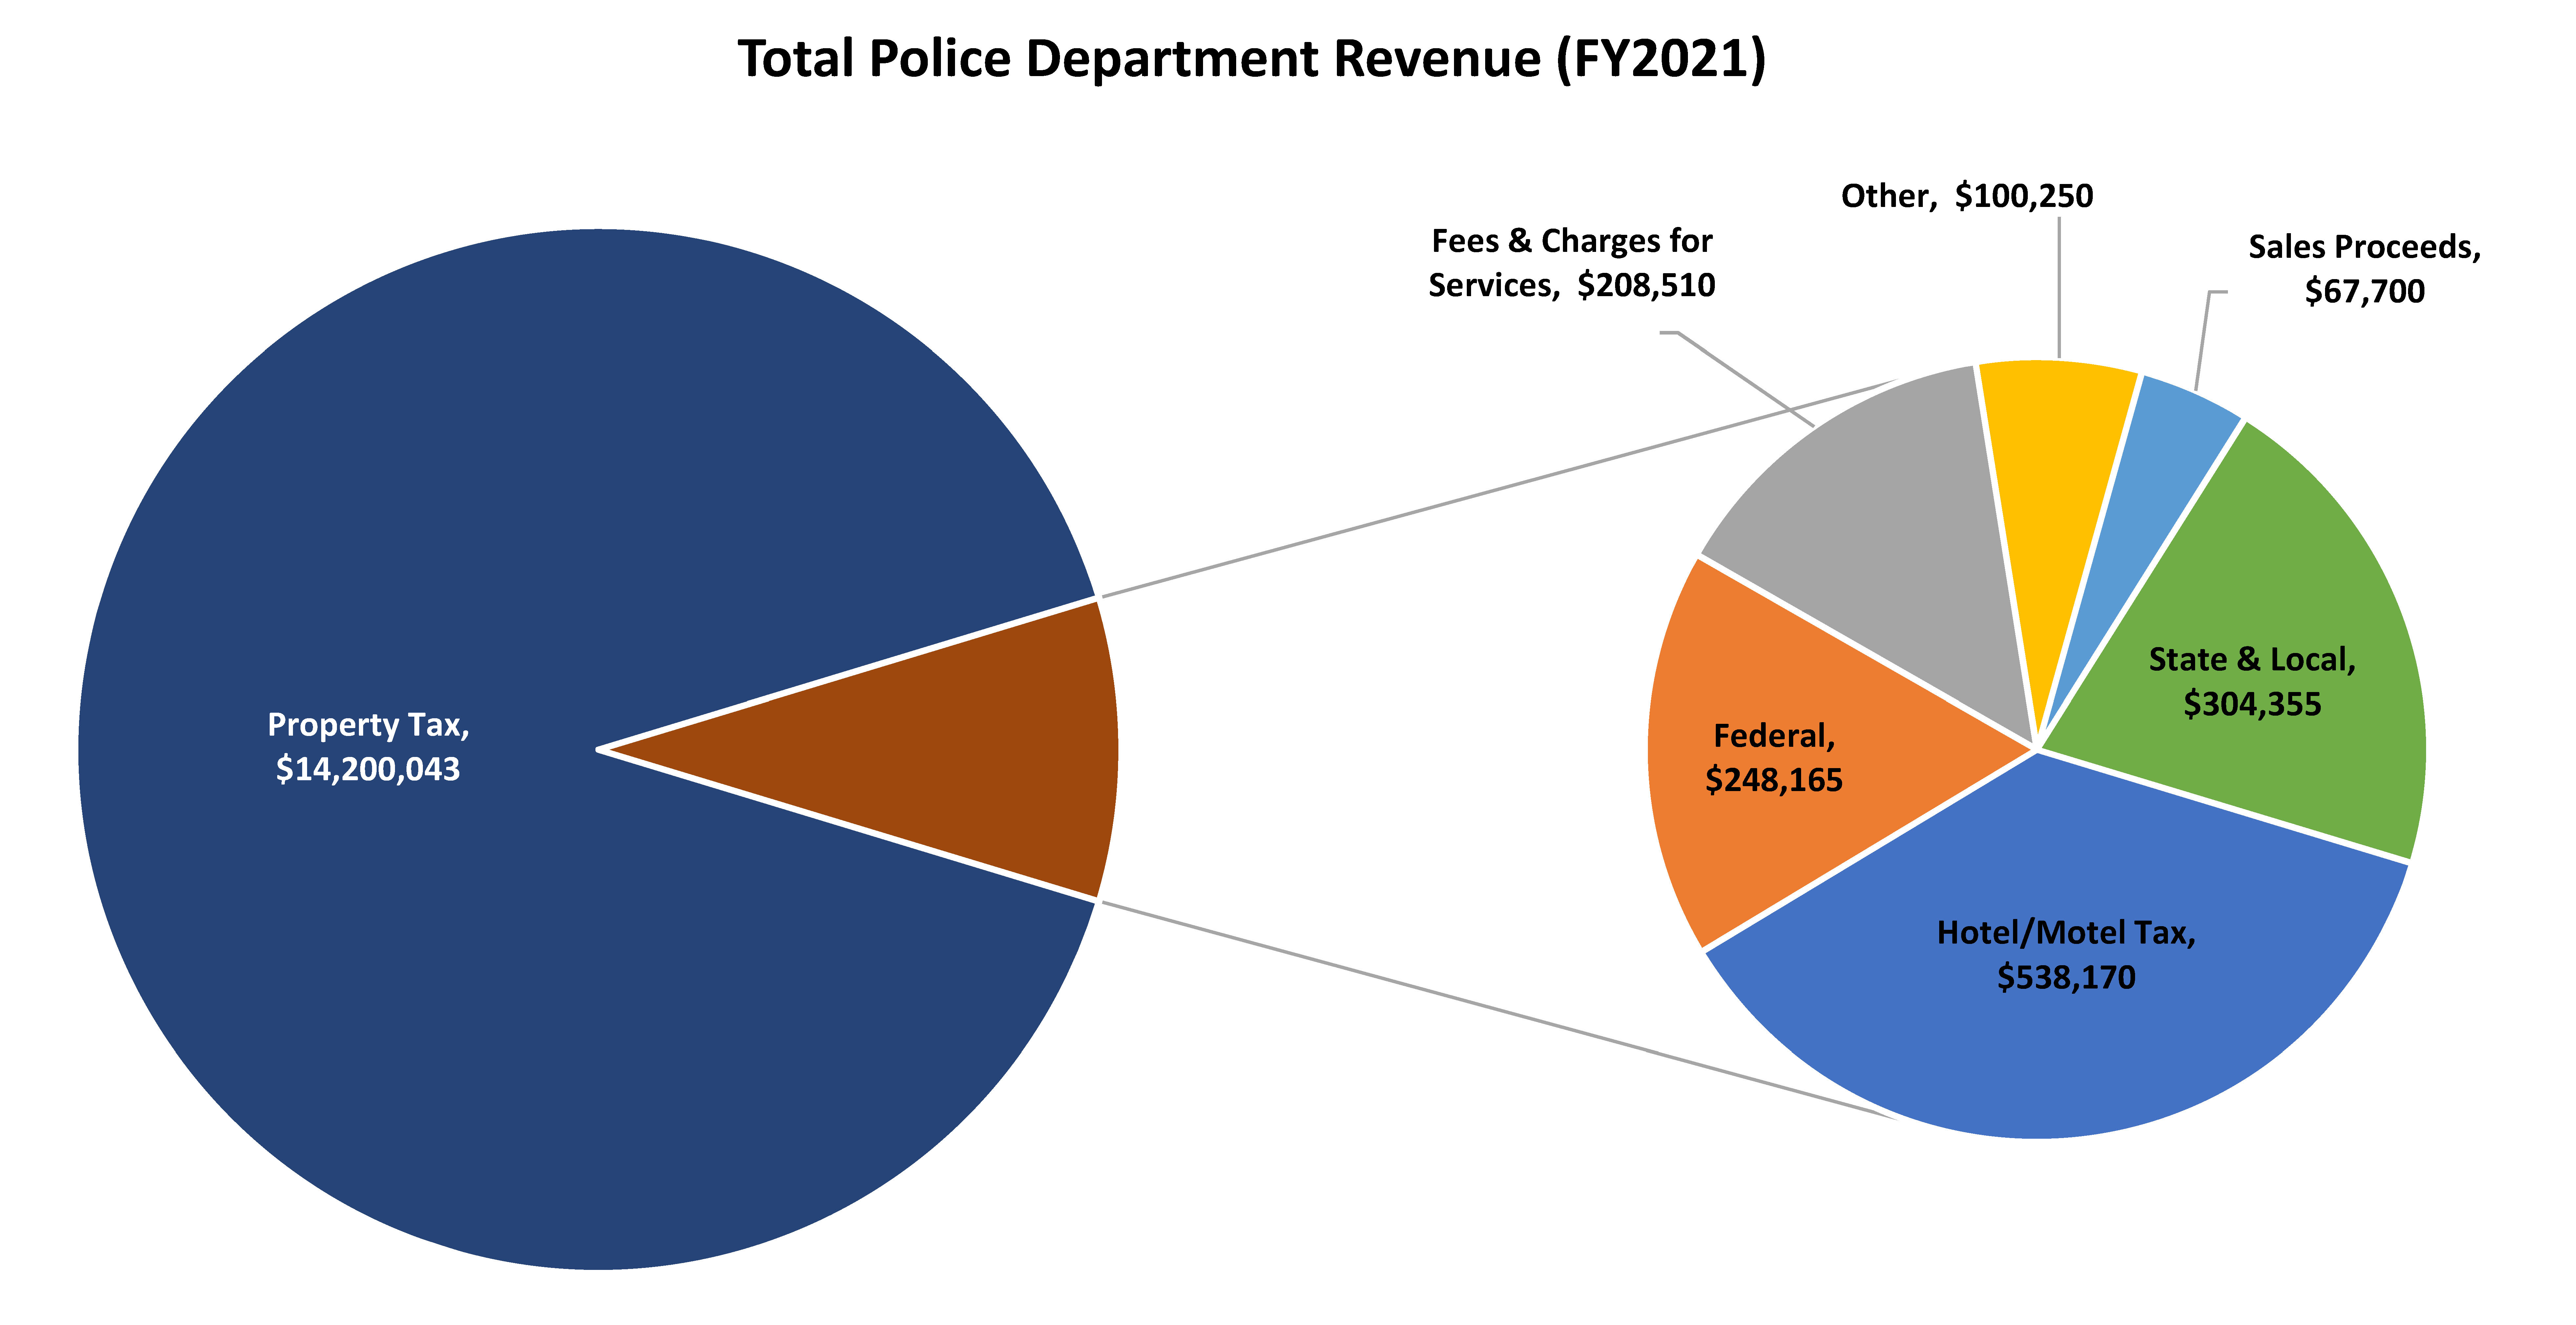 Total Police Department Revenue - FY21